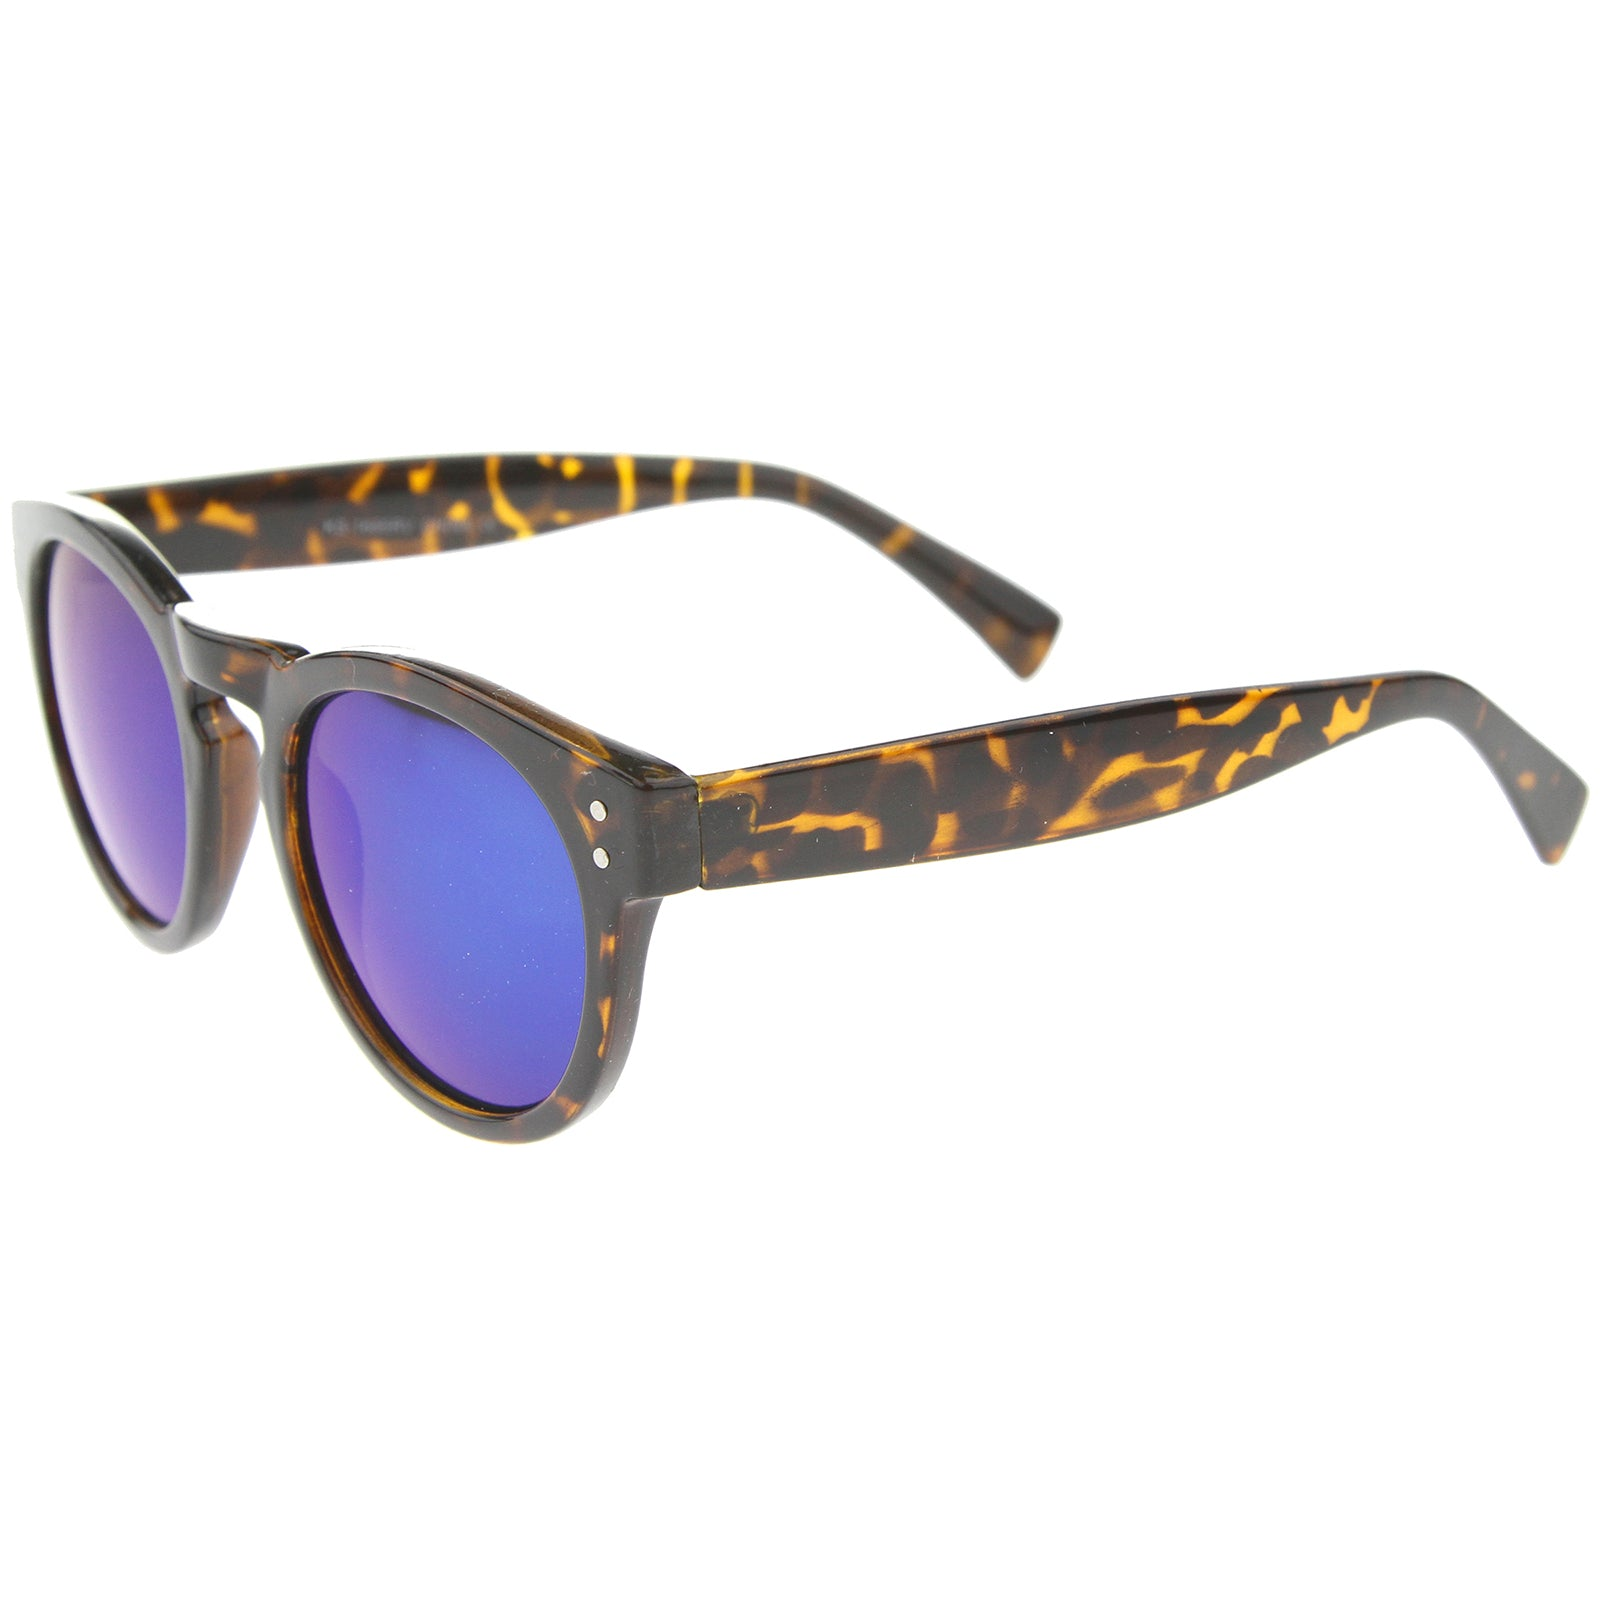 Womens Horn Rimmed Sunglasses With UV400 Protected Mirrored Lens - sunglass.la - 7